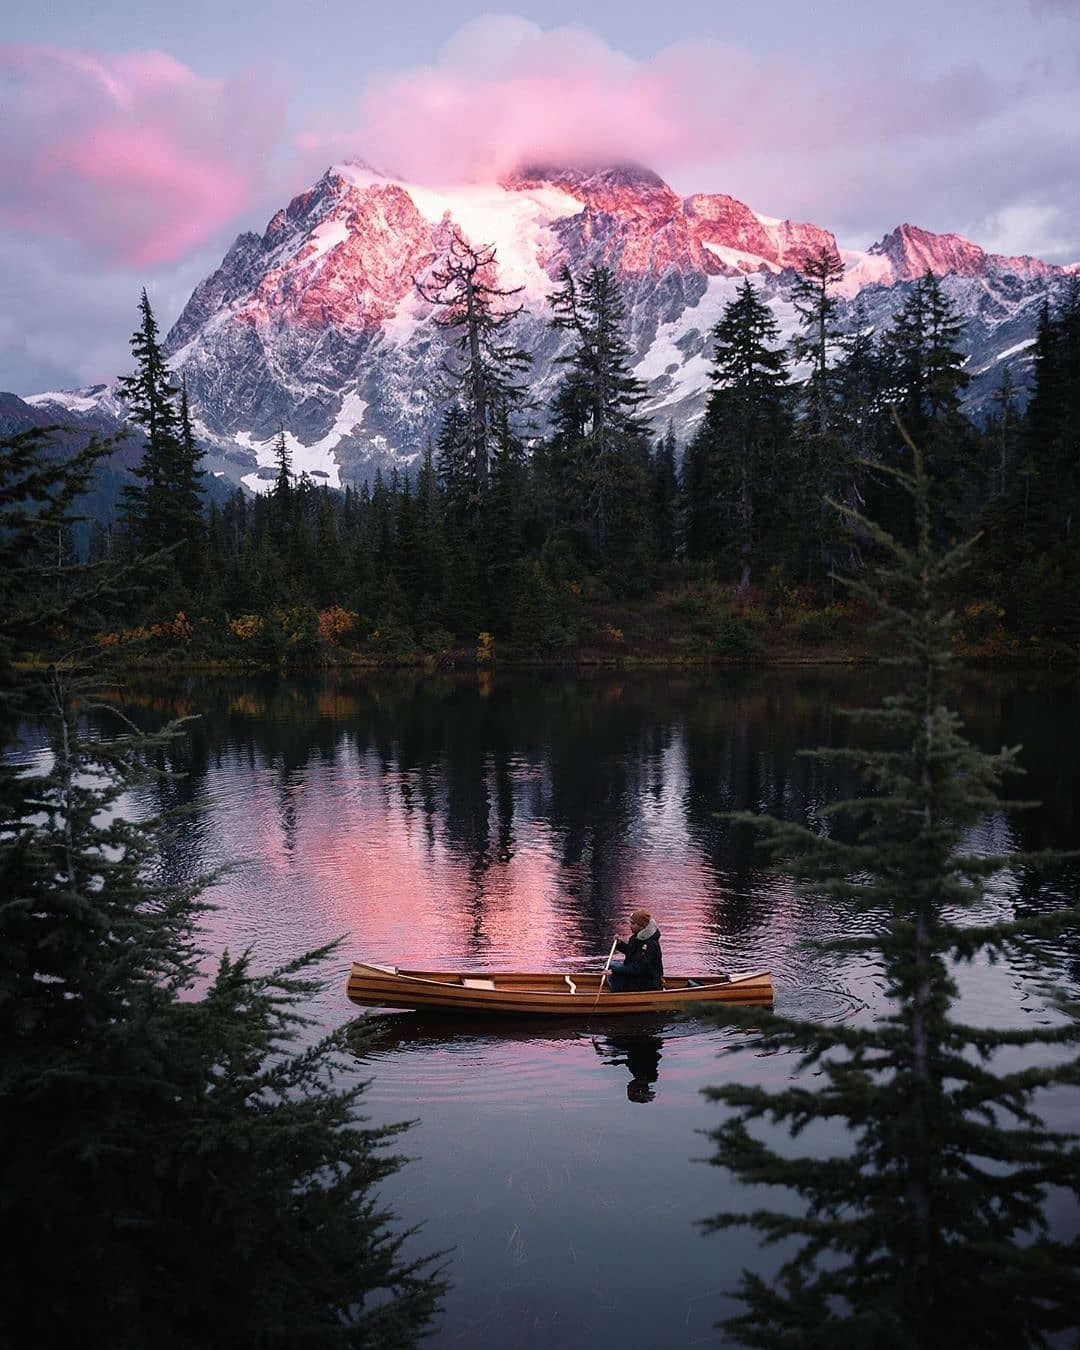 man in canoe on mountain lake